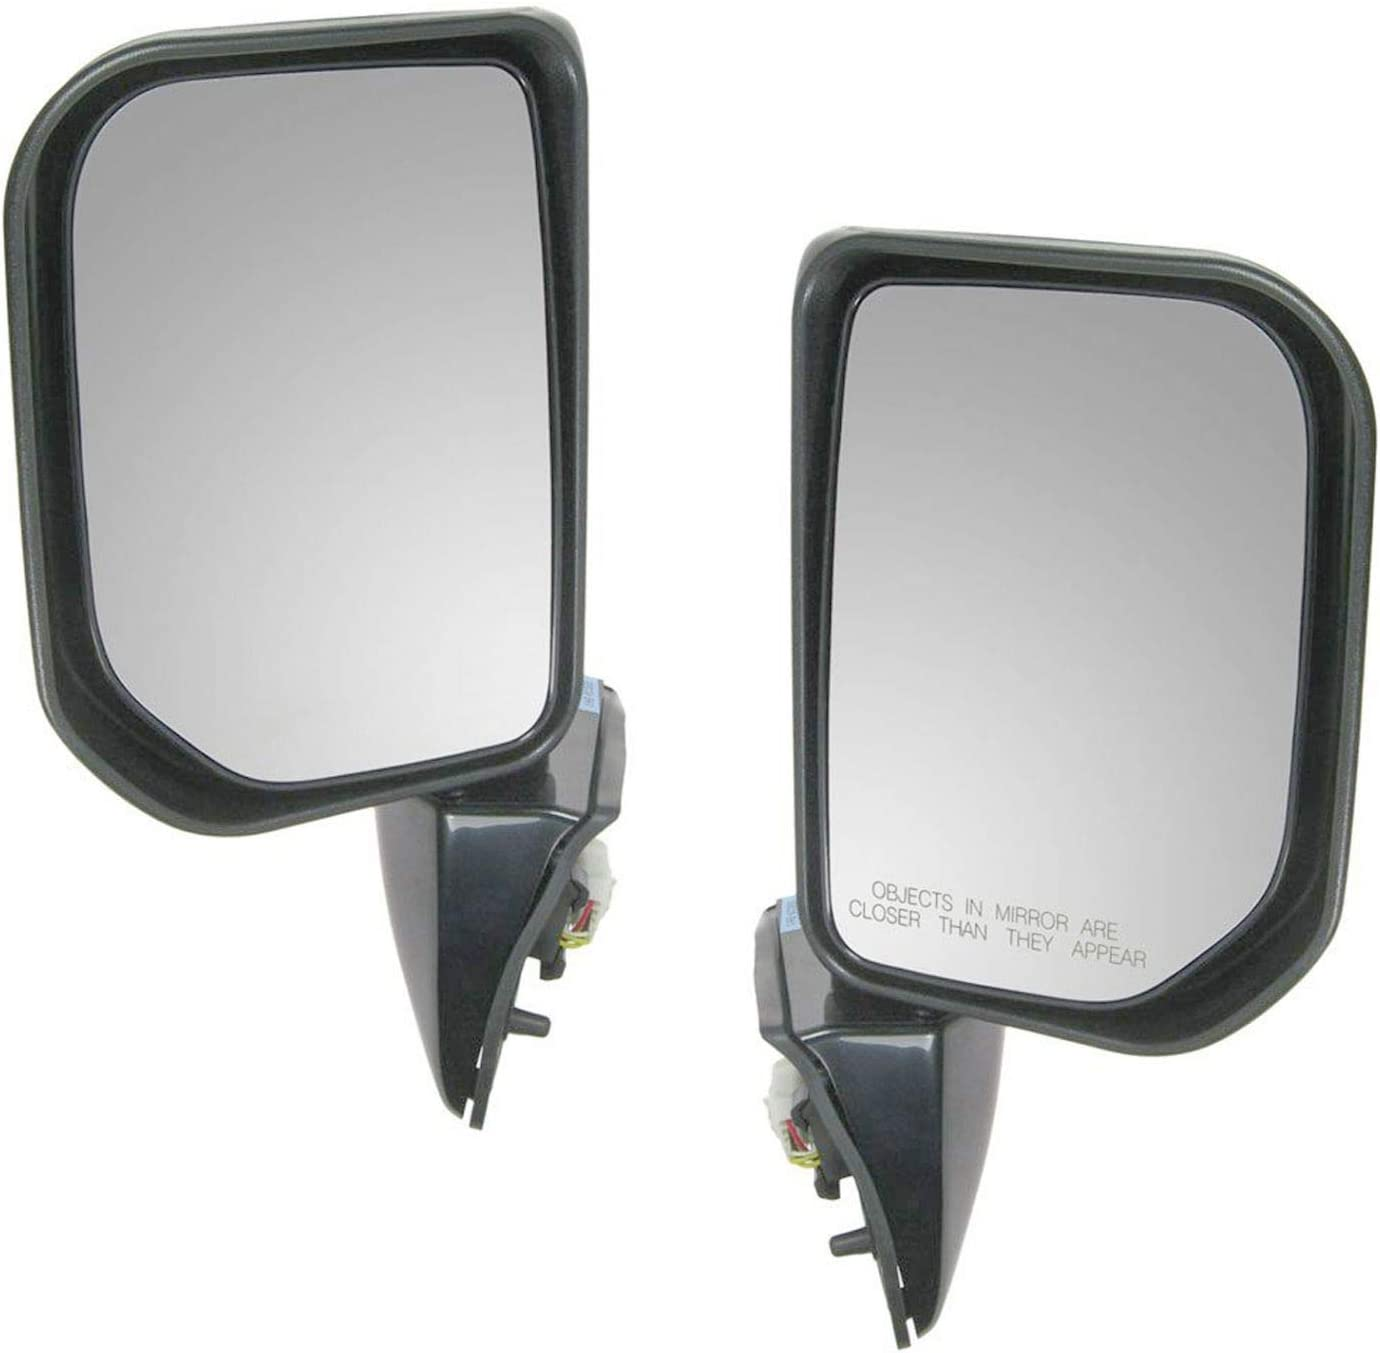 NEW POWER MIRROR GLOSS BLACK RIGHT FITS 2007-2014 TOYOTA FJ CRUISER TO1321250